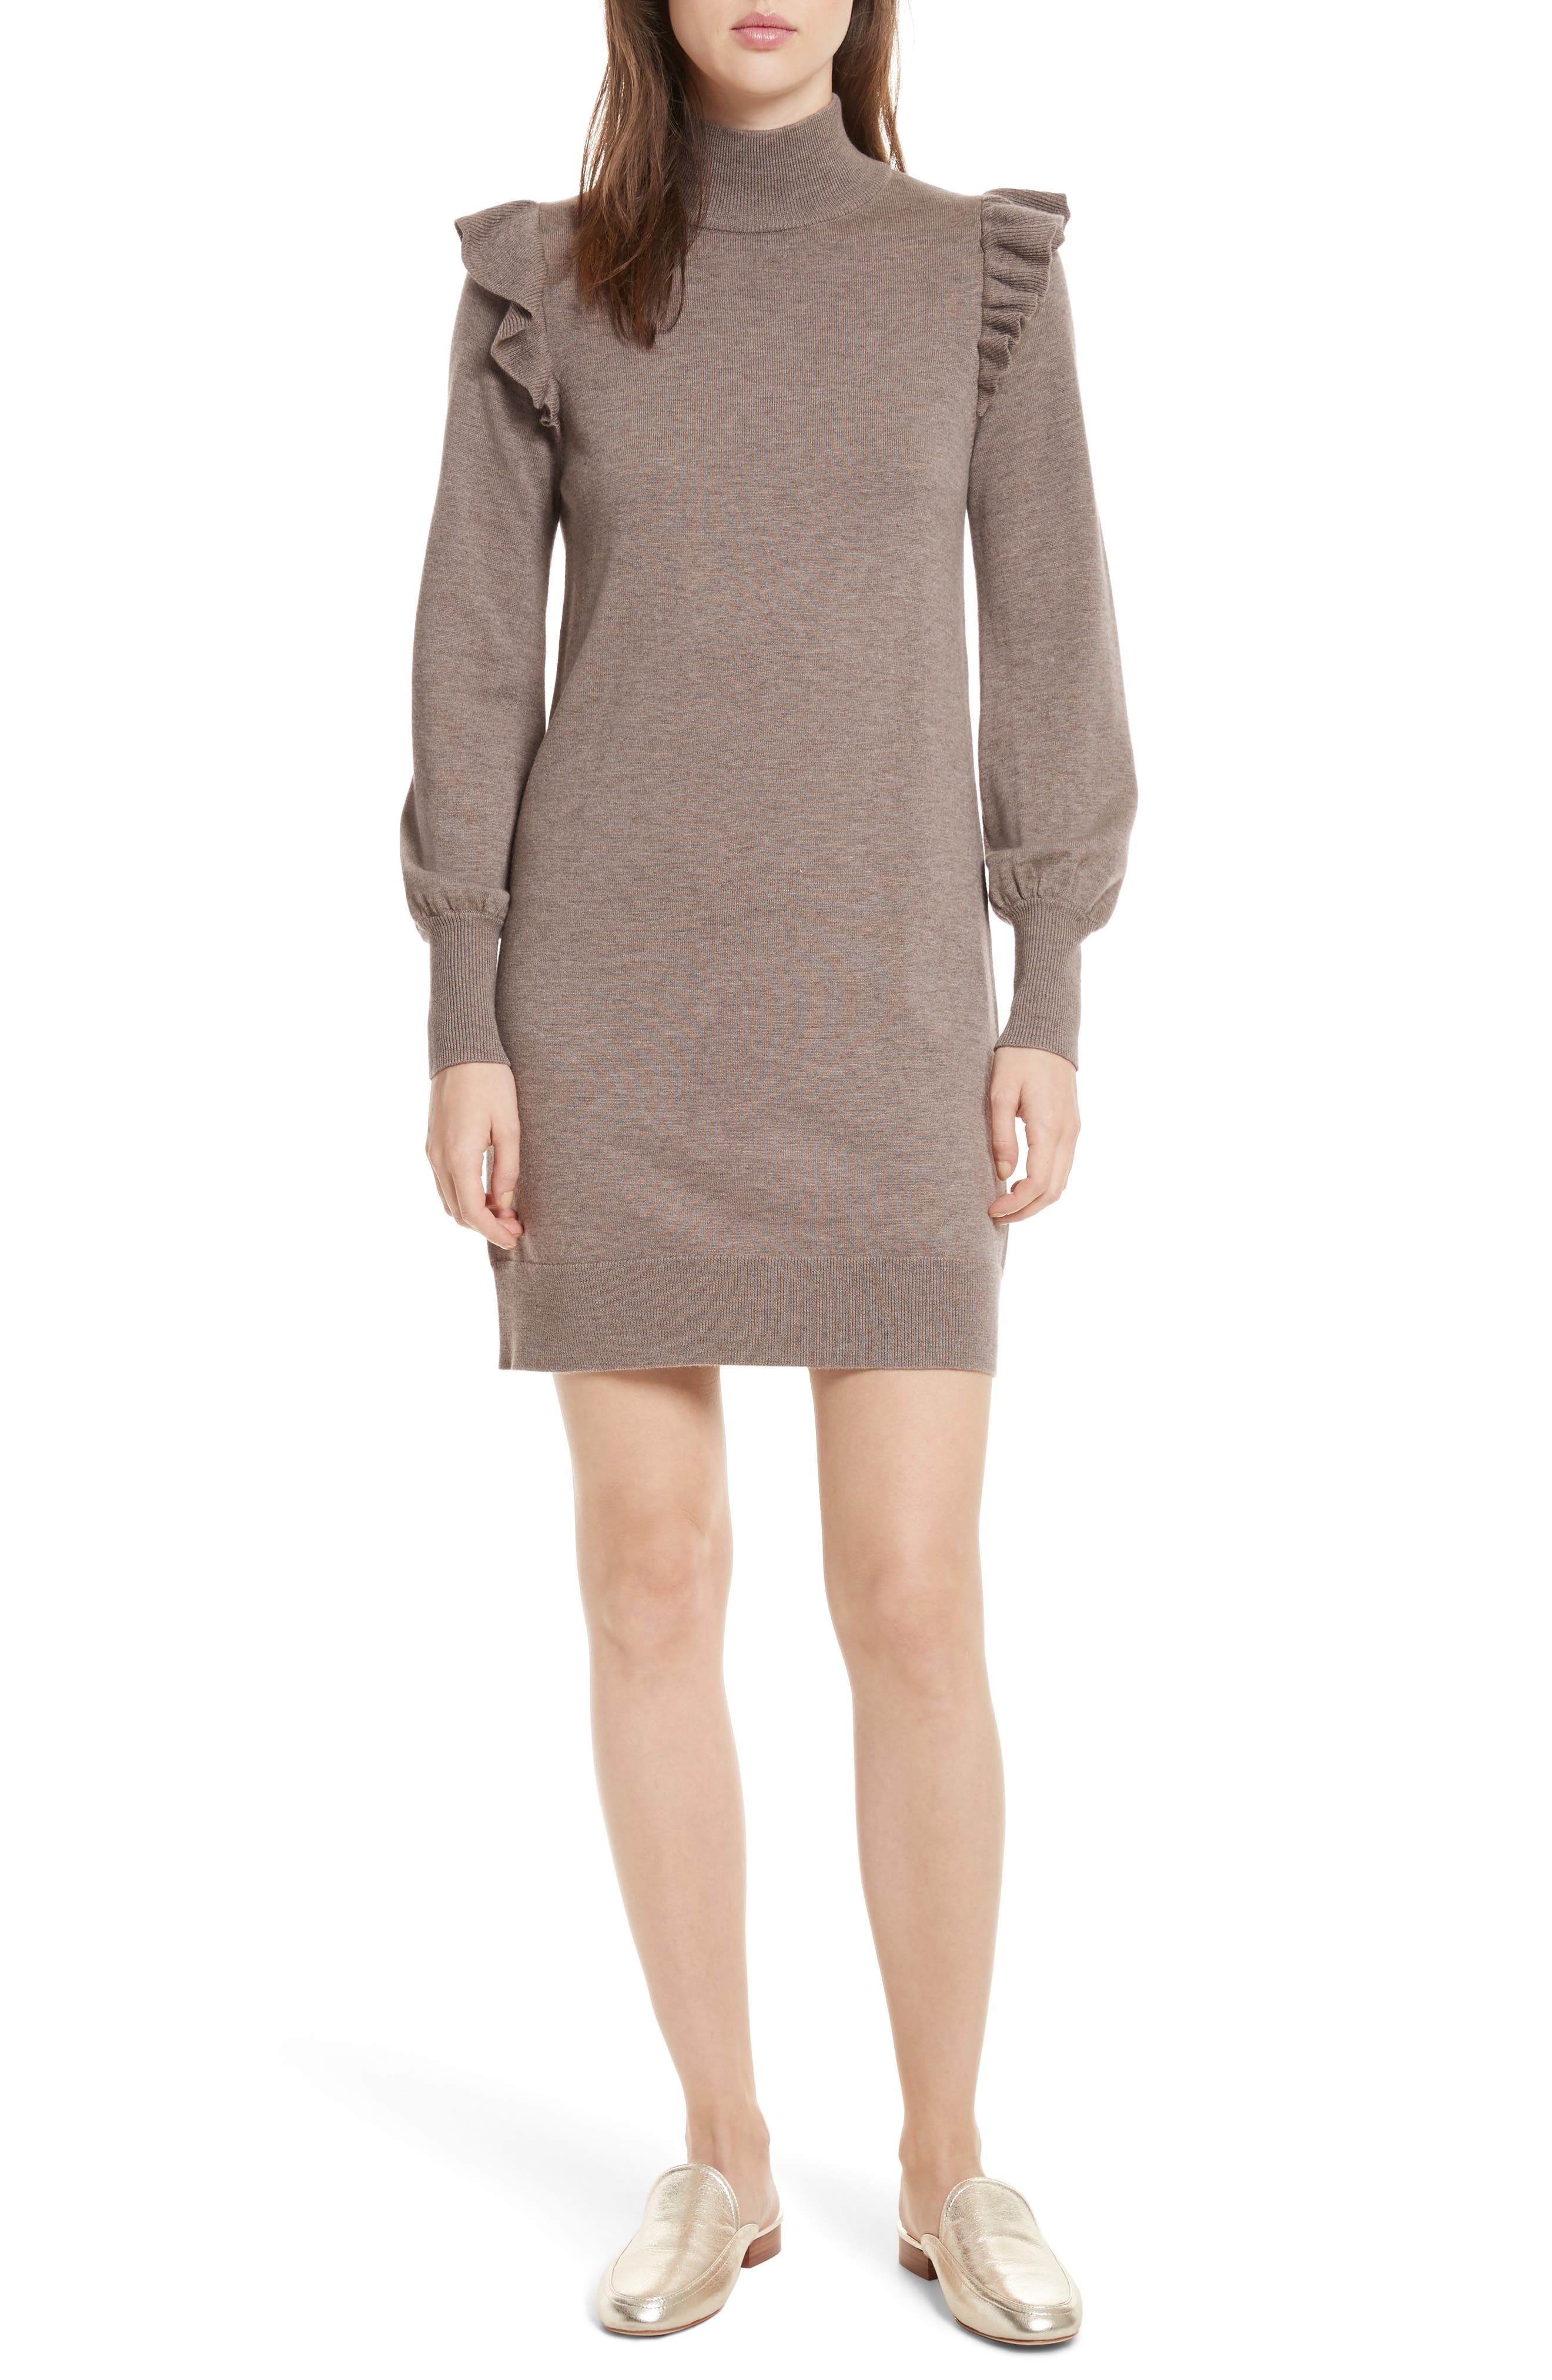 Joie Catriona Wool & Silk Sweater Dress